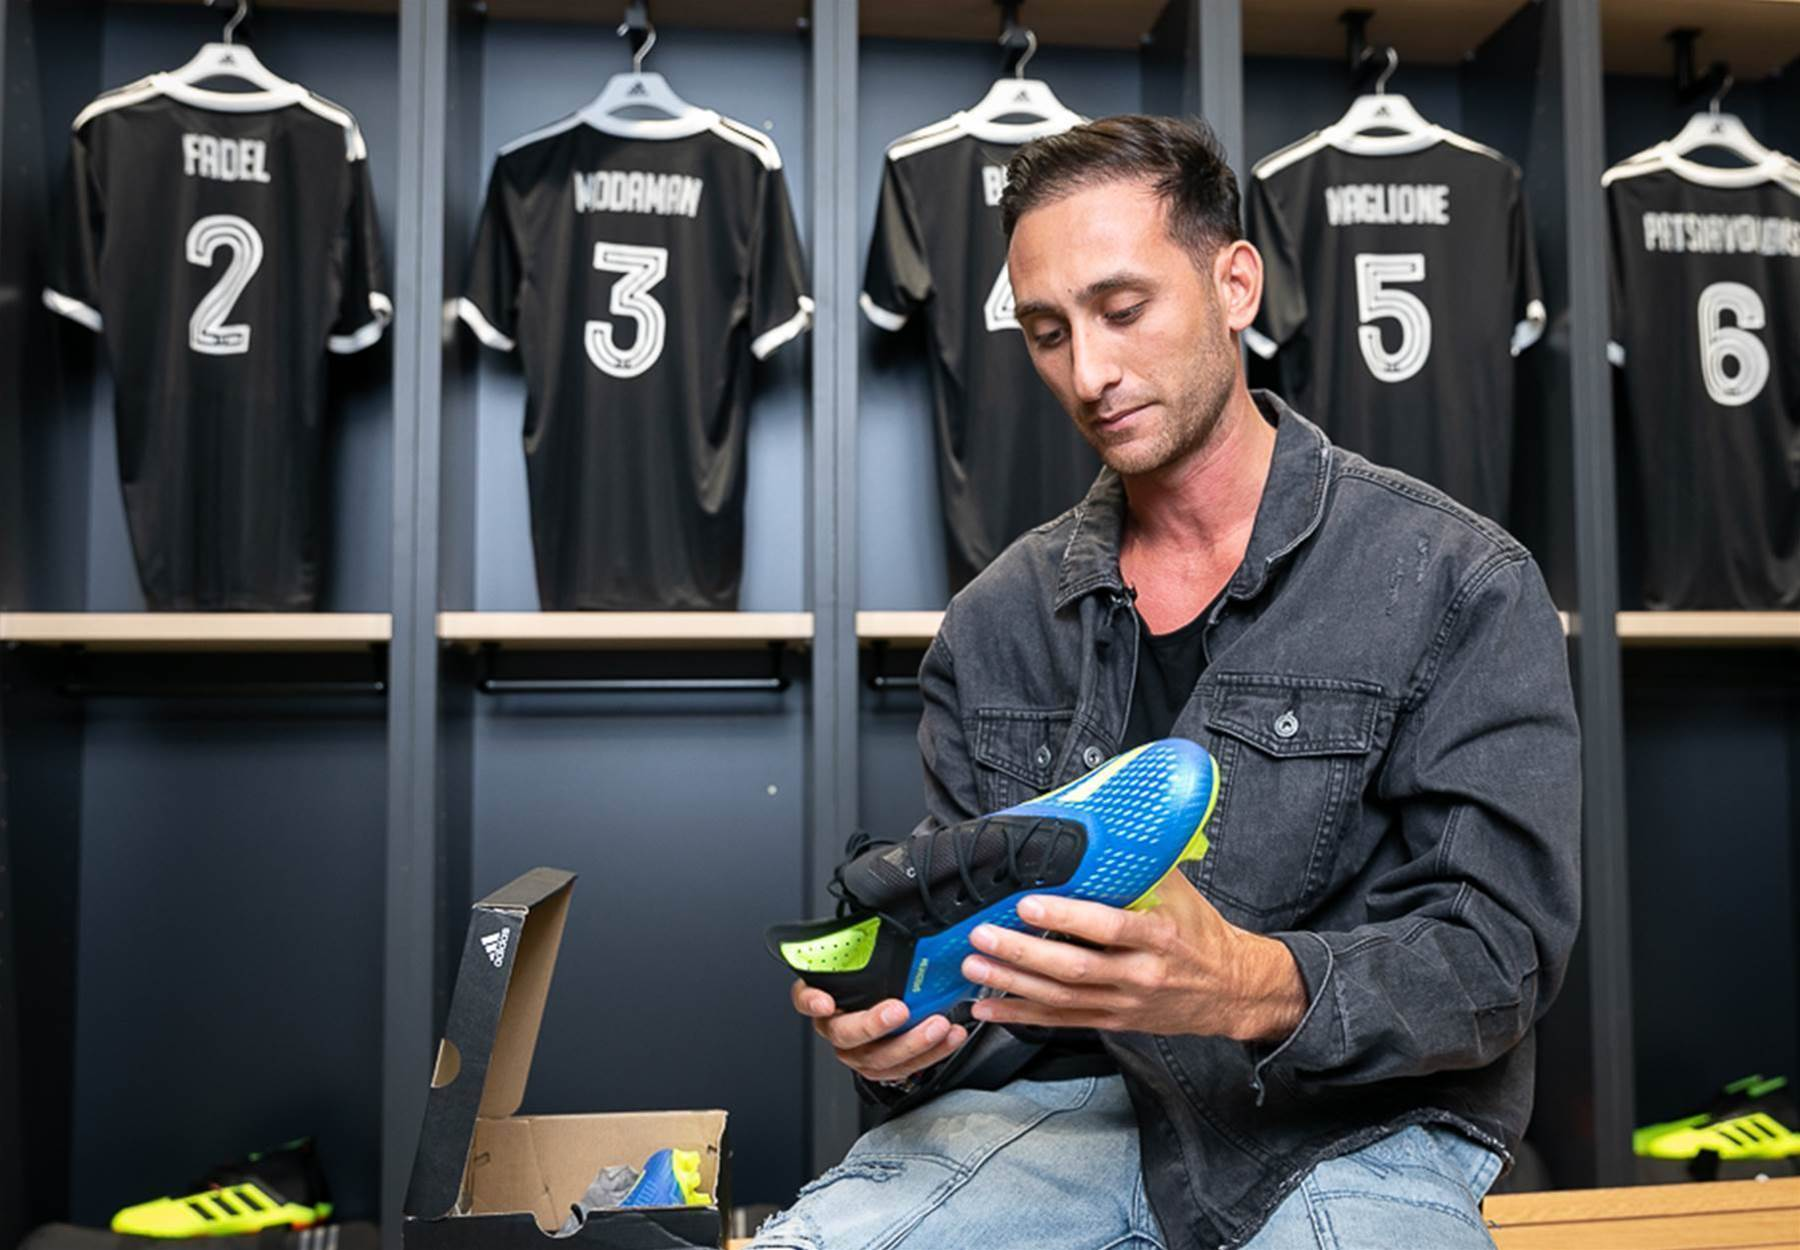 Video: Hands on with adidas' Energy Mode Pack